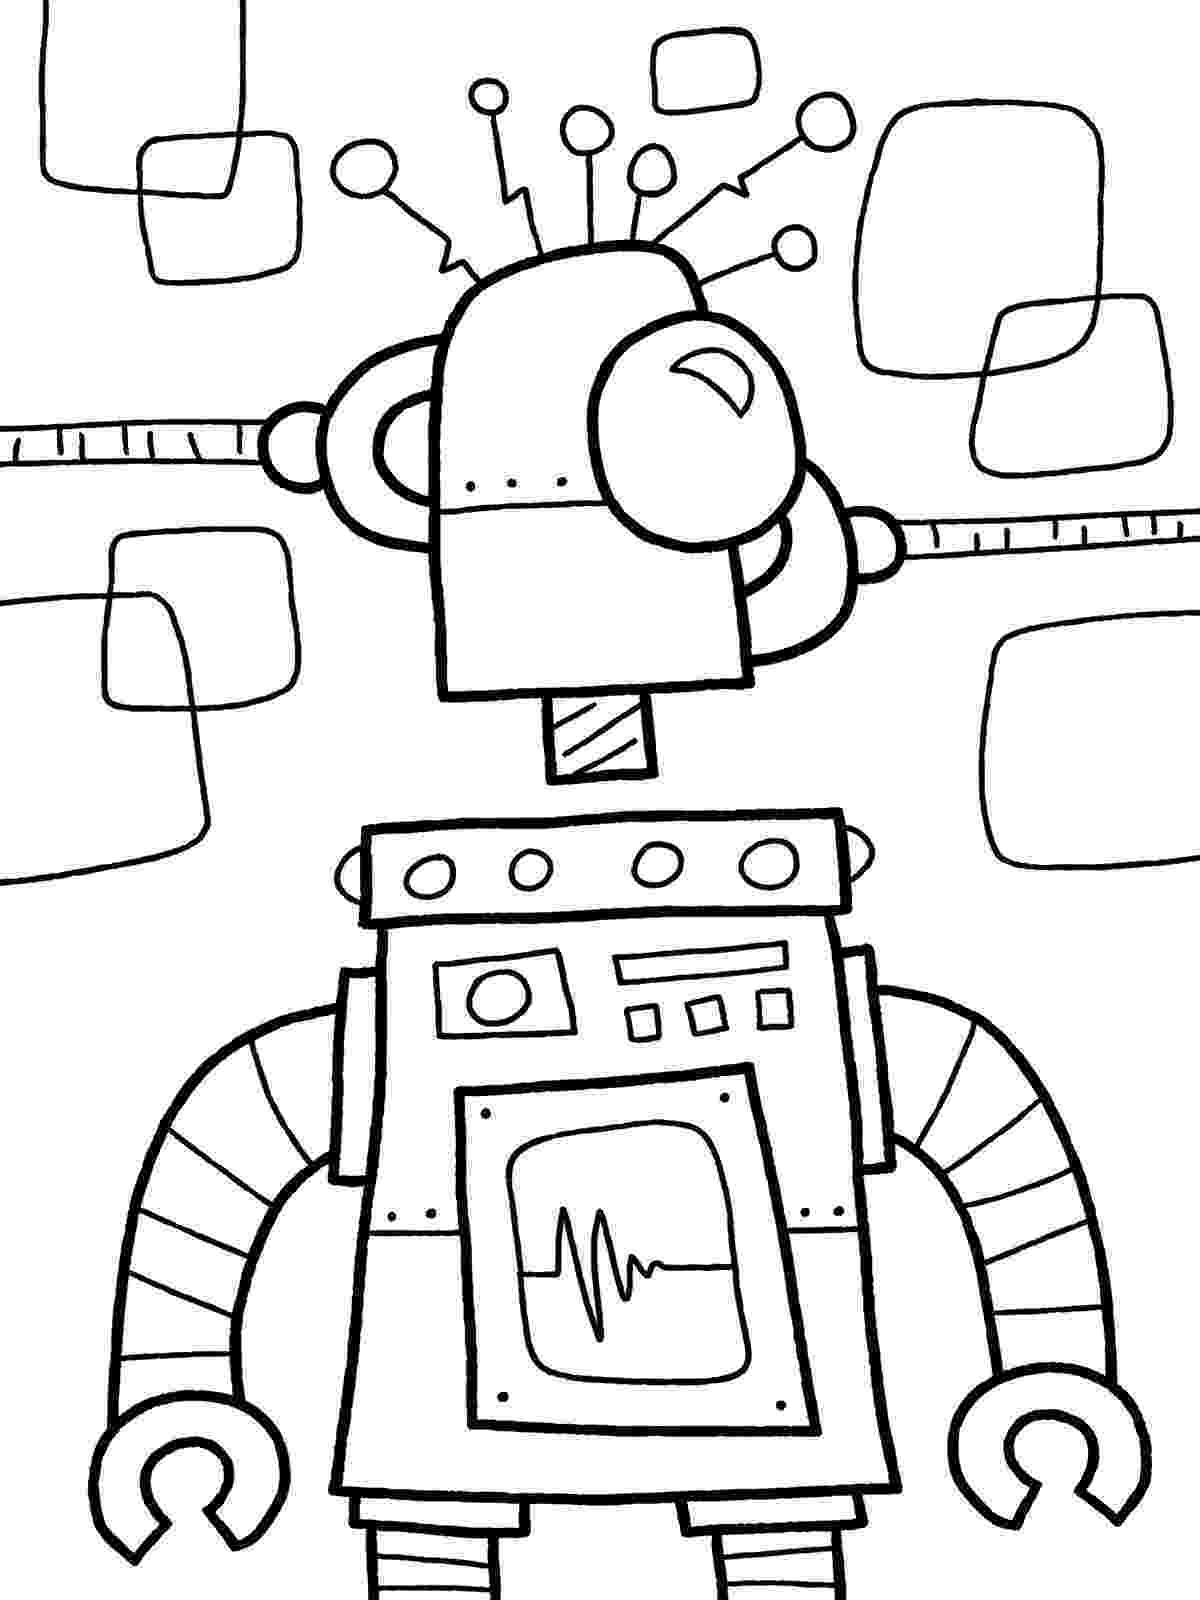 robot coloring sheets robot coloring pages getcoloringpagescom coloring sheets robot